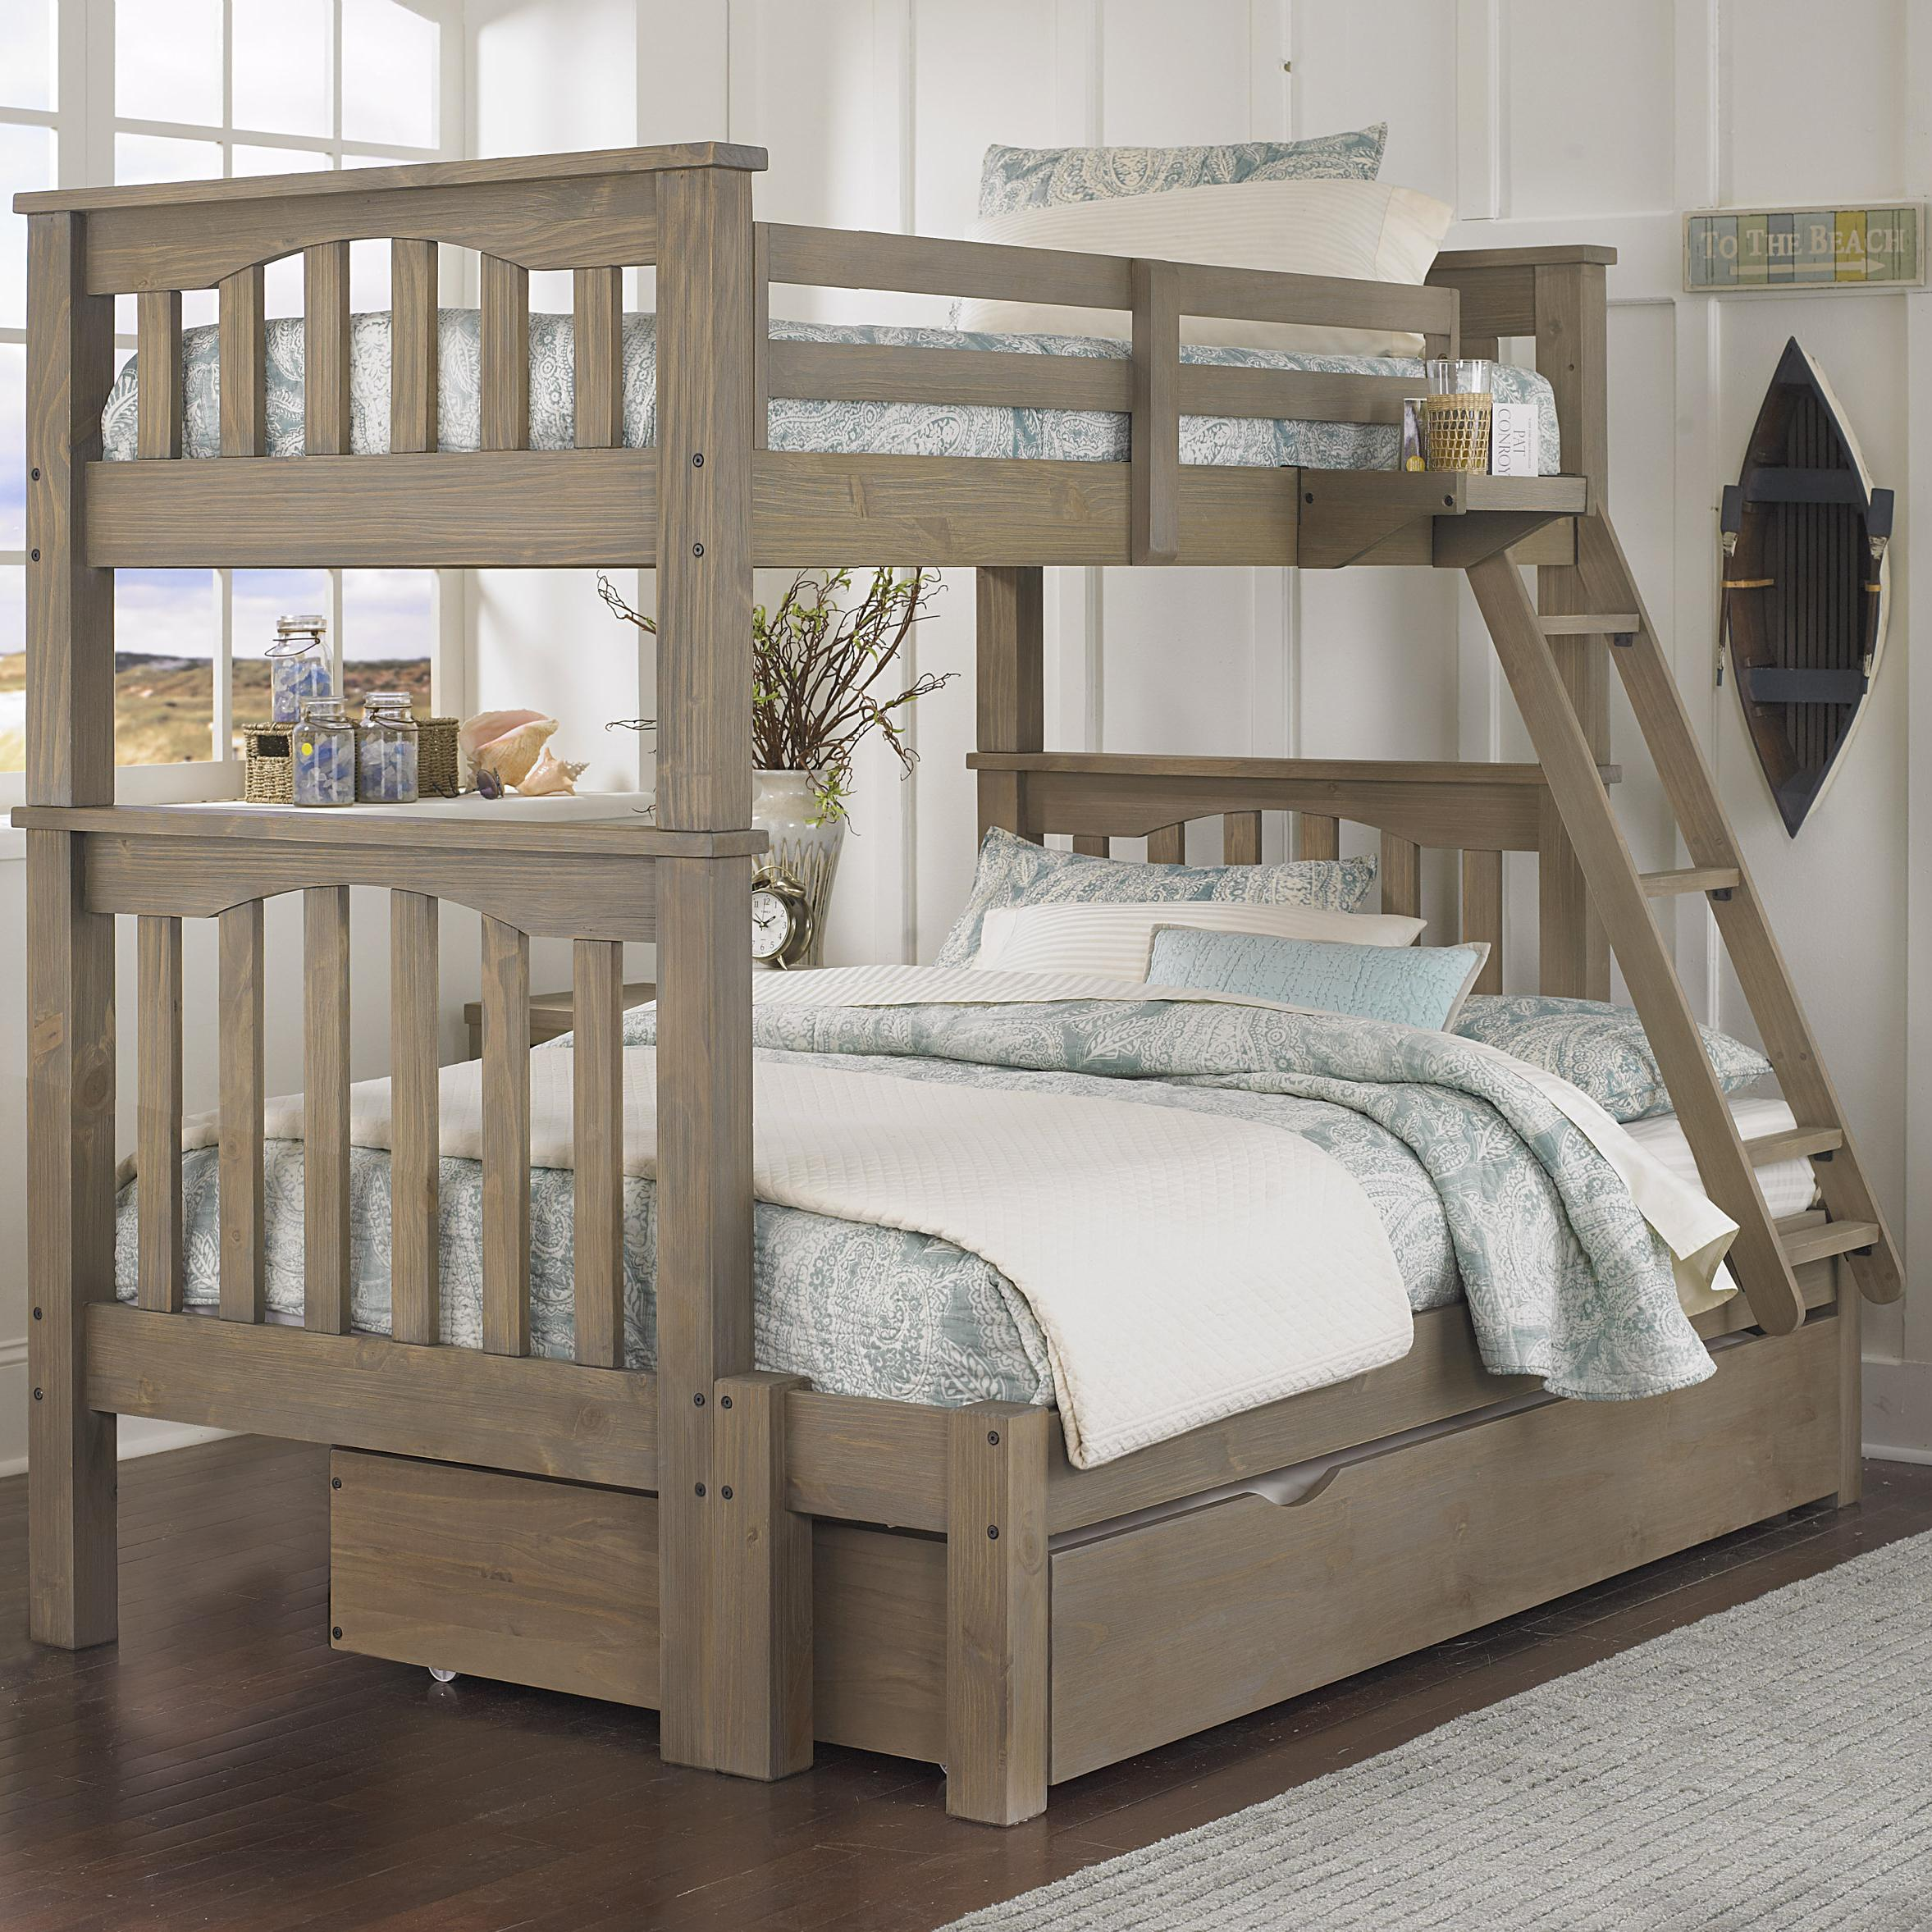 NE Kids Highlands Twin Over Full Harper Bunk Bed With Trundle - Item Number: 10055+10560